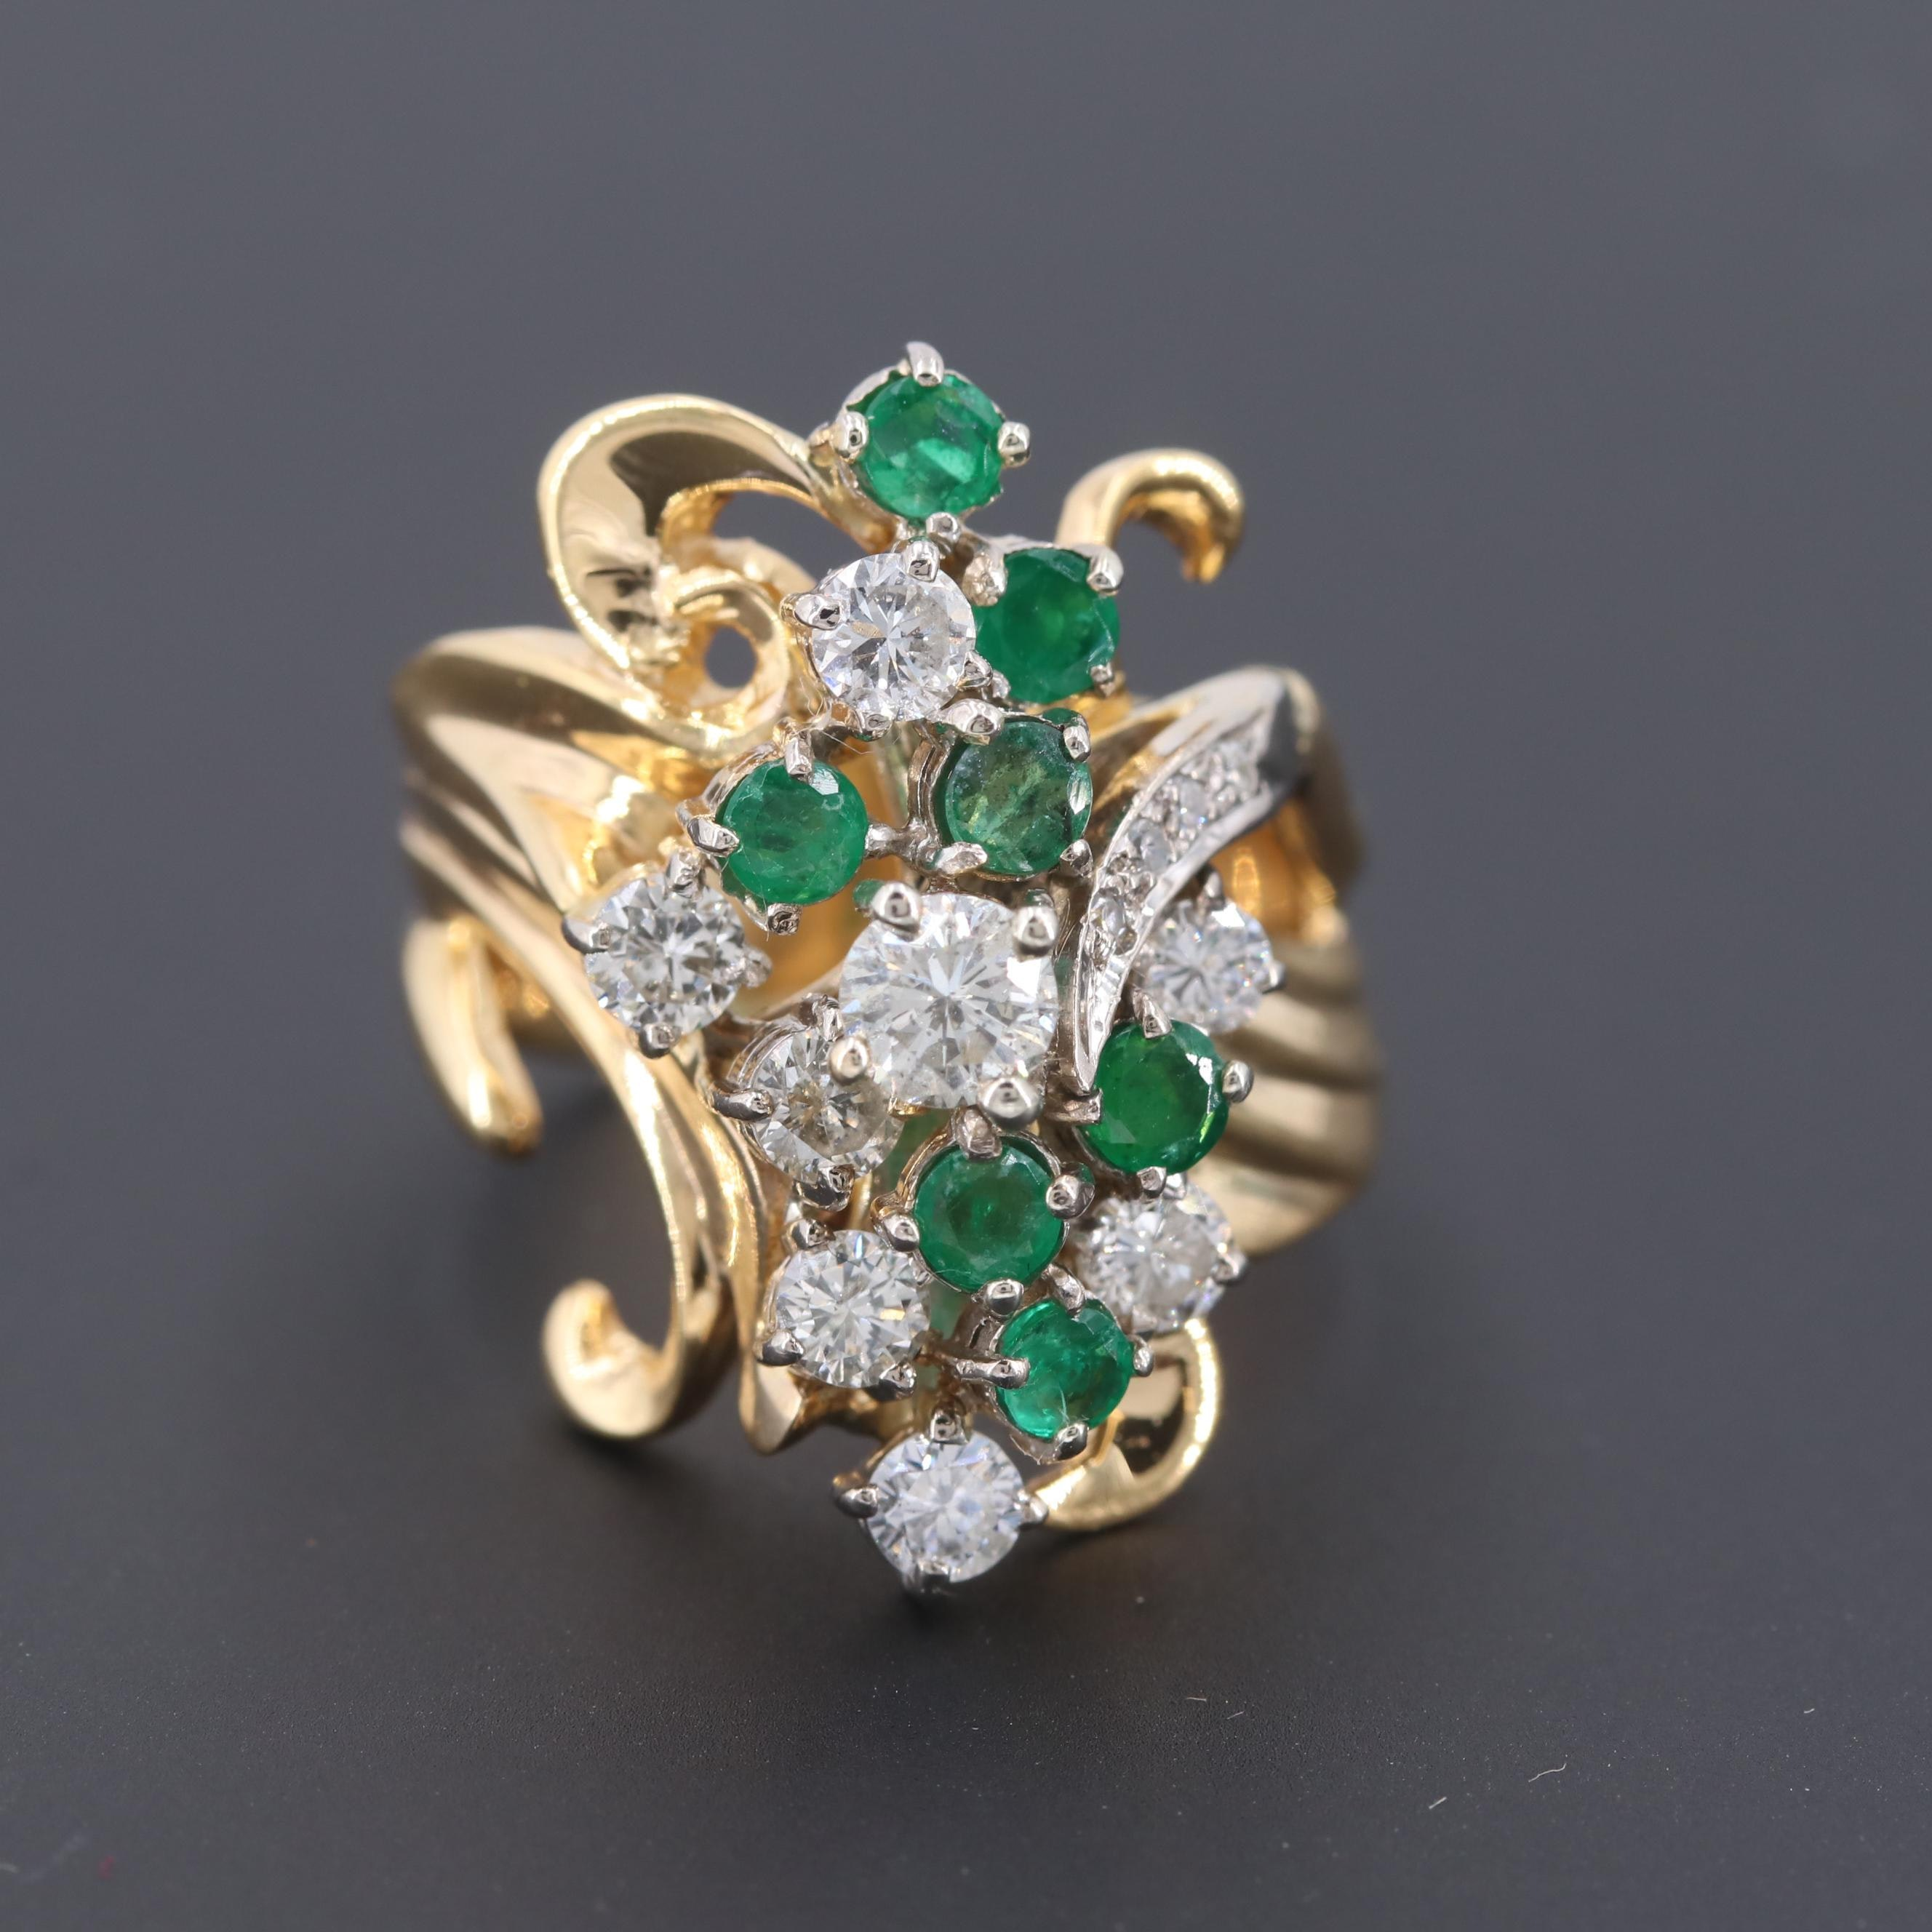 14K Yellow Gold 1.07 CTW Diamond and Emerald Ring